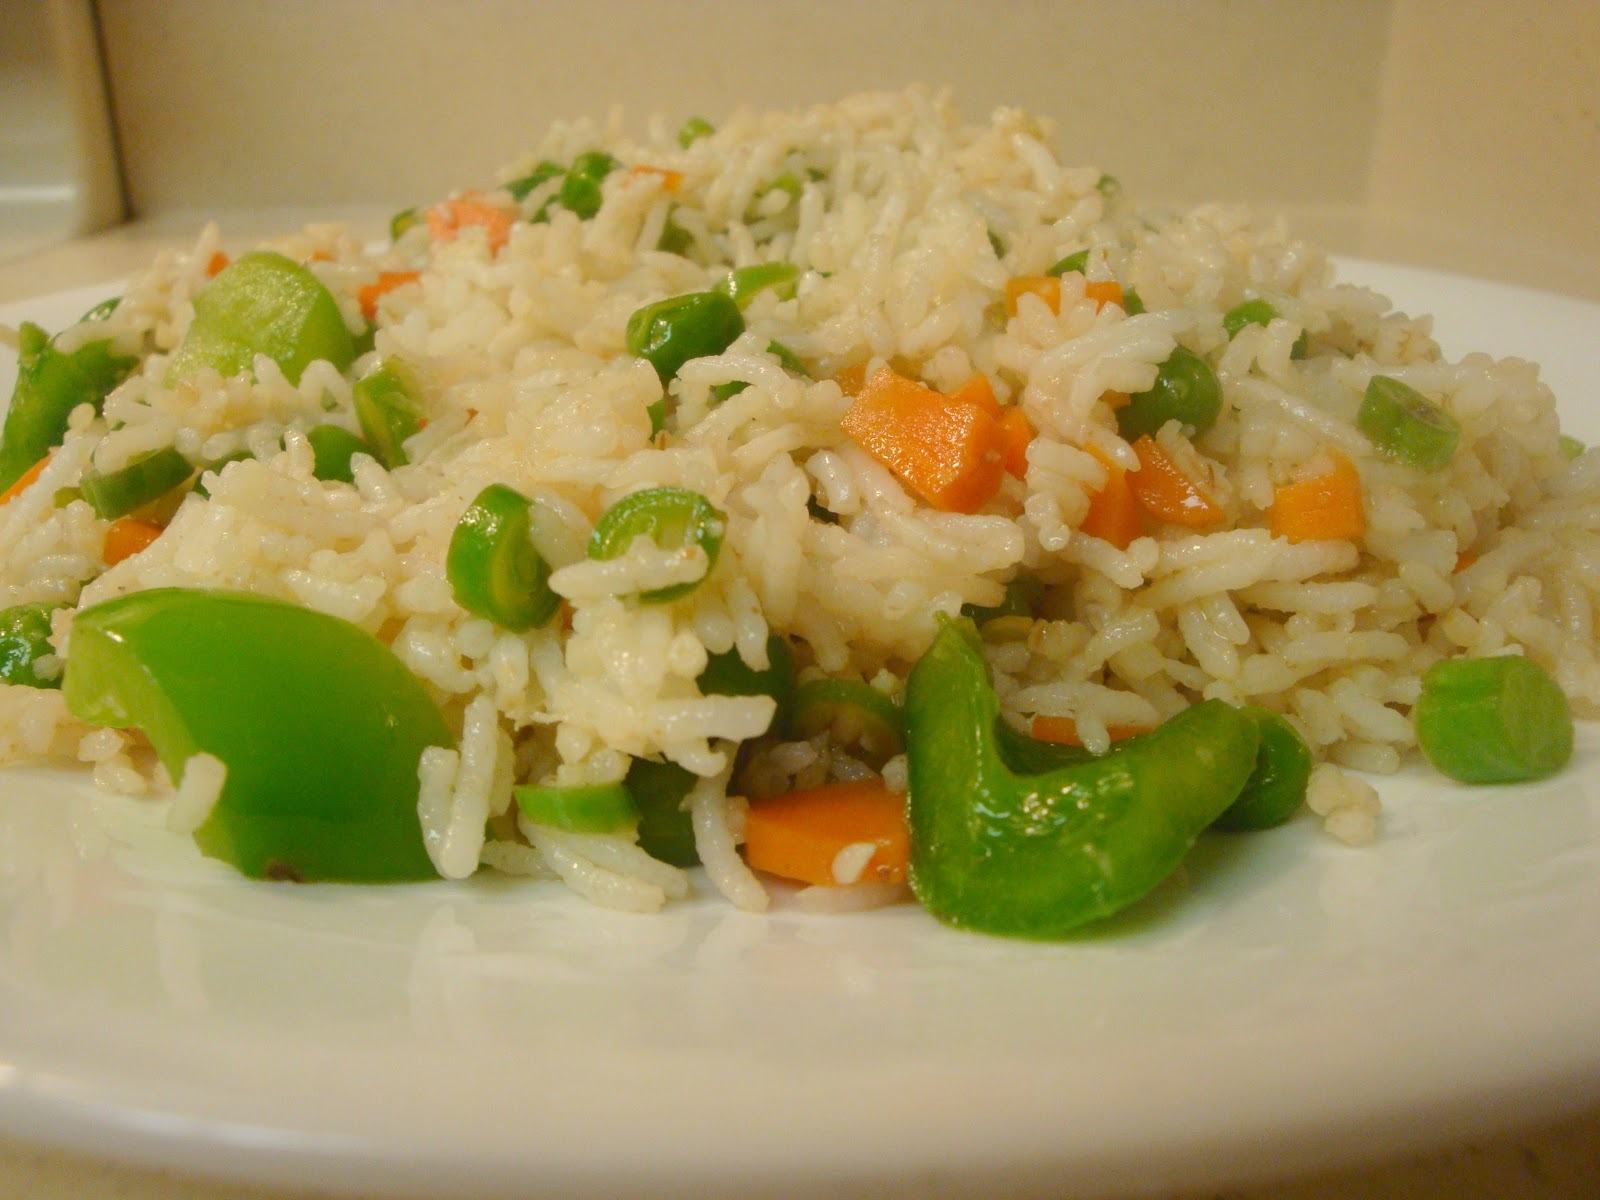 chef4indians: Vegetable Fried Rice(Indian/Desi style)